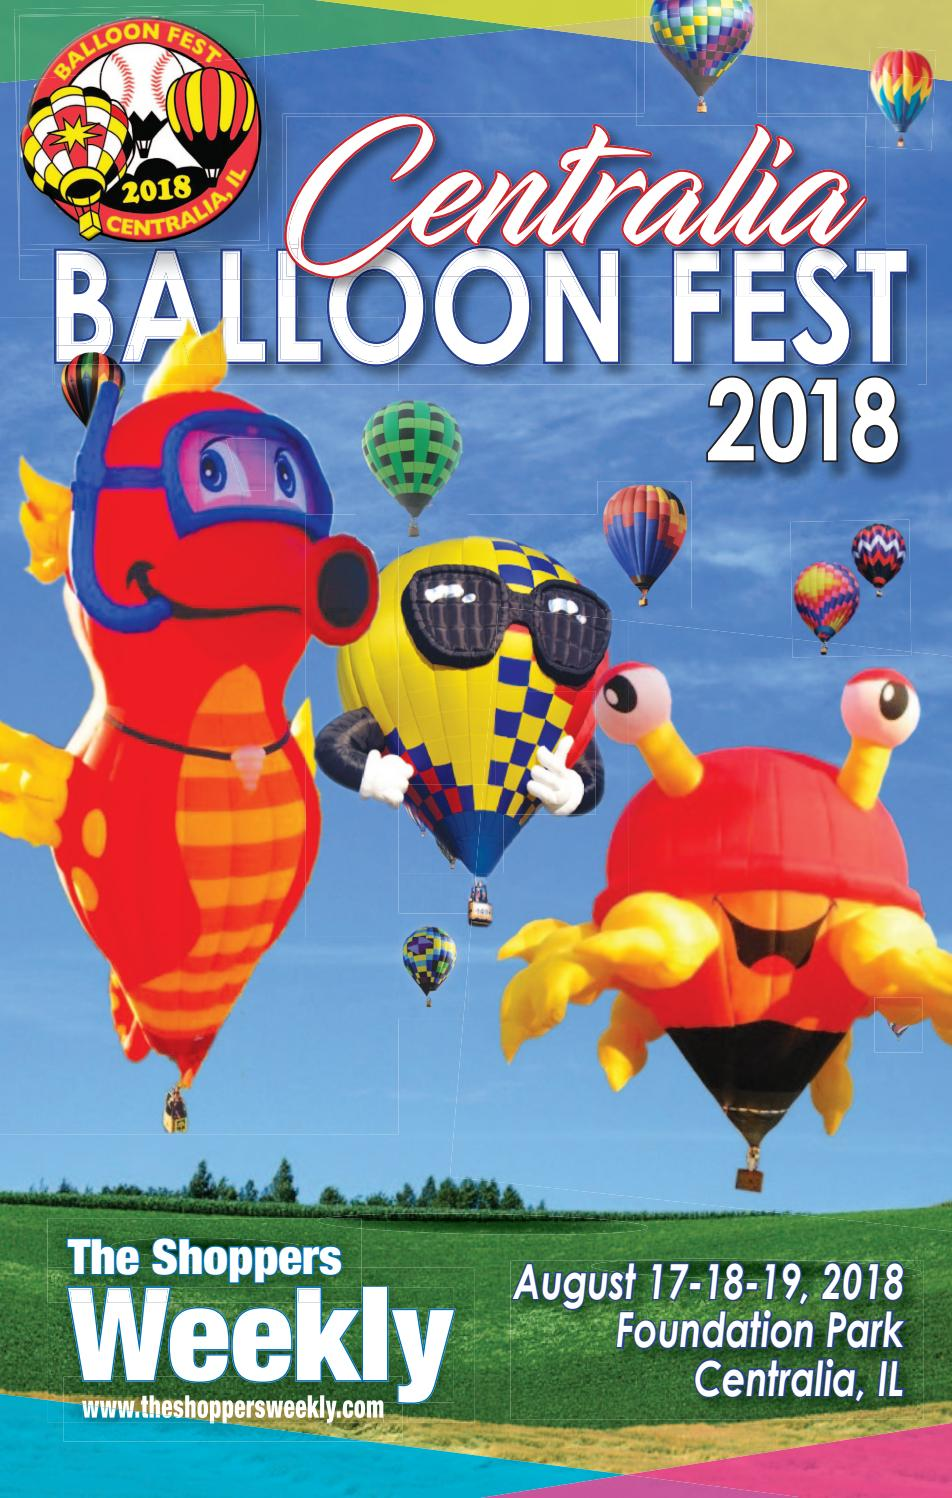 The Shoppers Weekly Centralia Balloon Fest 2018 By Scott Pinkowski Issuu